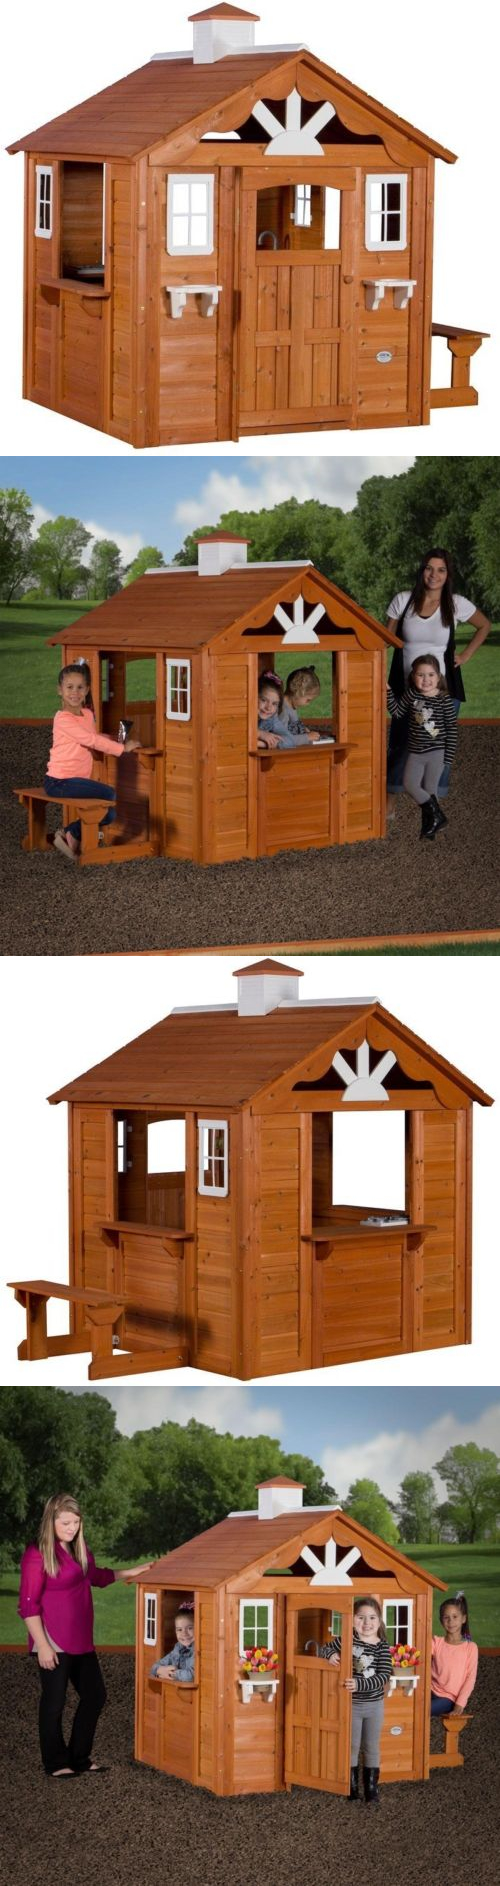 permanent playhouses 145995 kids backyard discovery summer